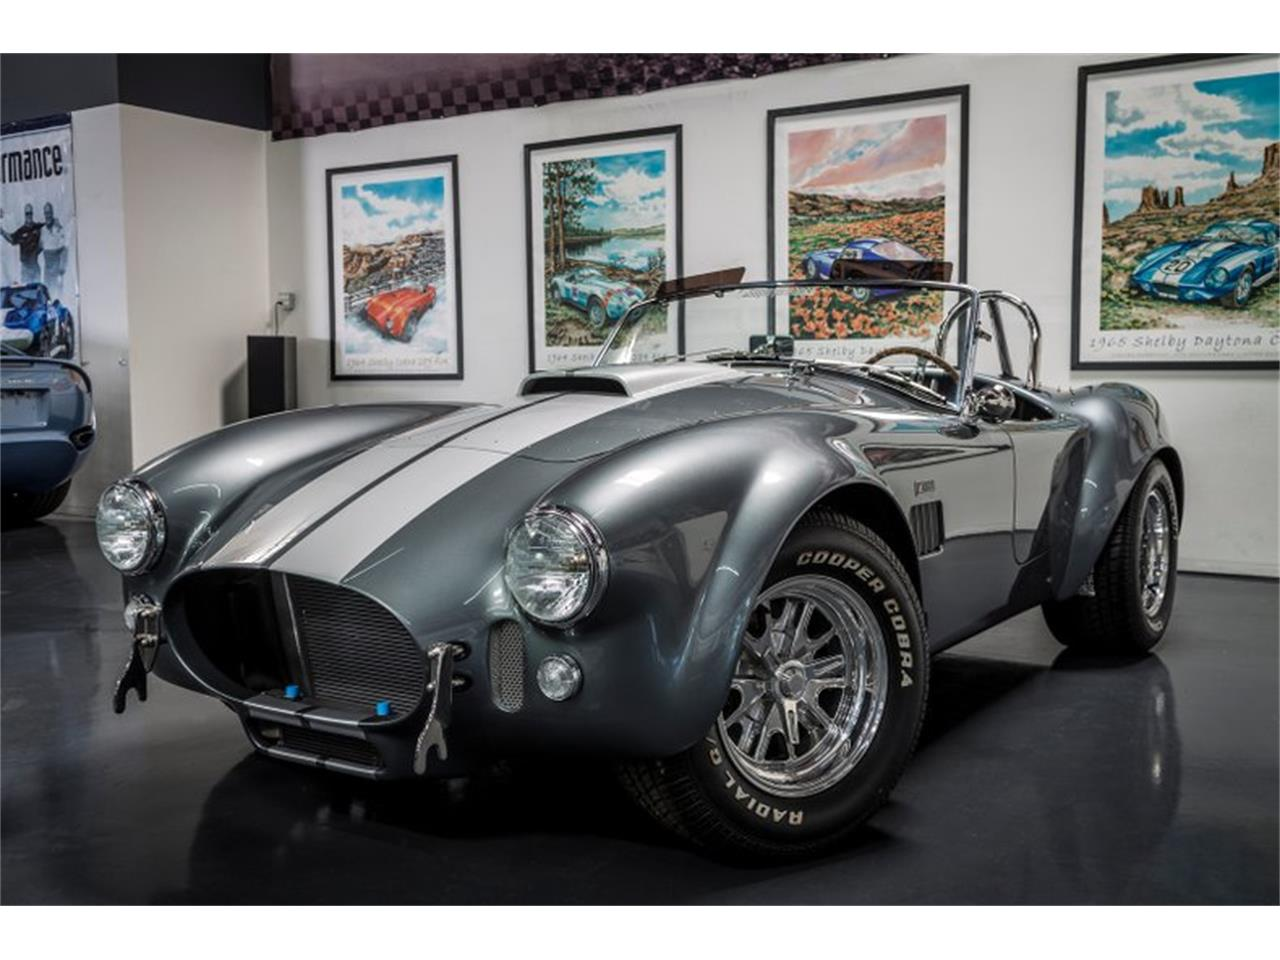 1900 Superformance MKIII for sale in Irvine, CA – photo 6